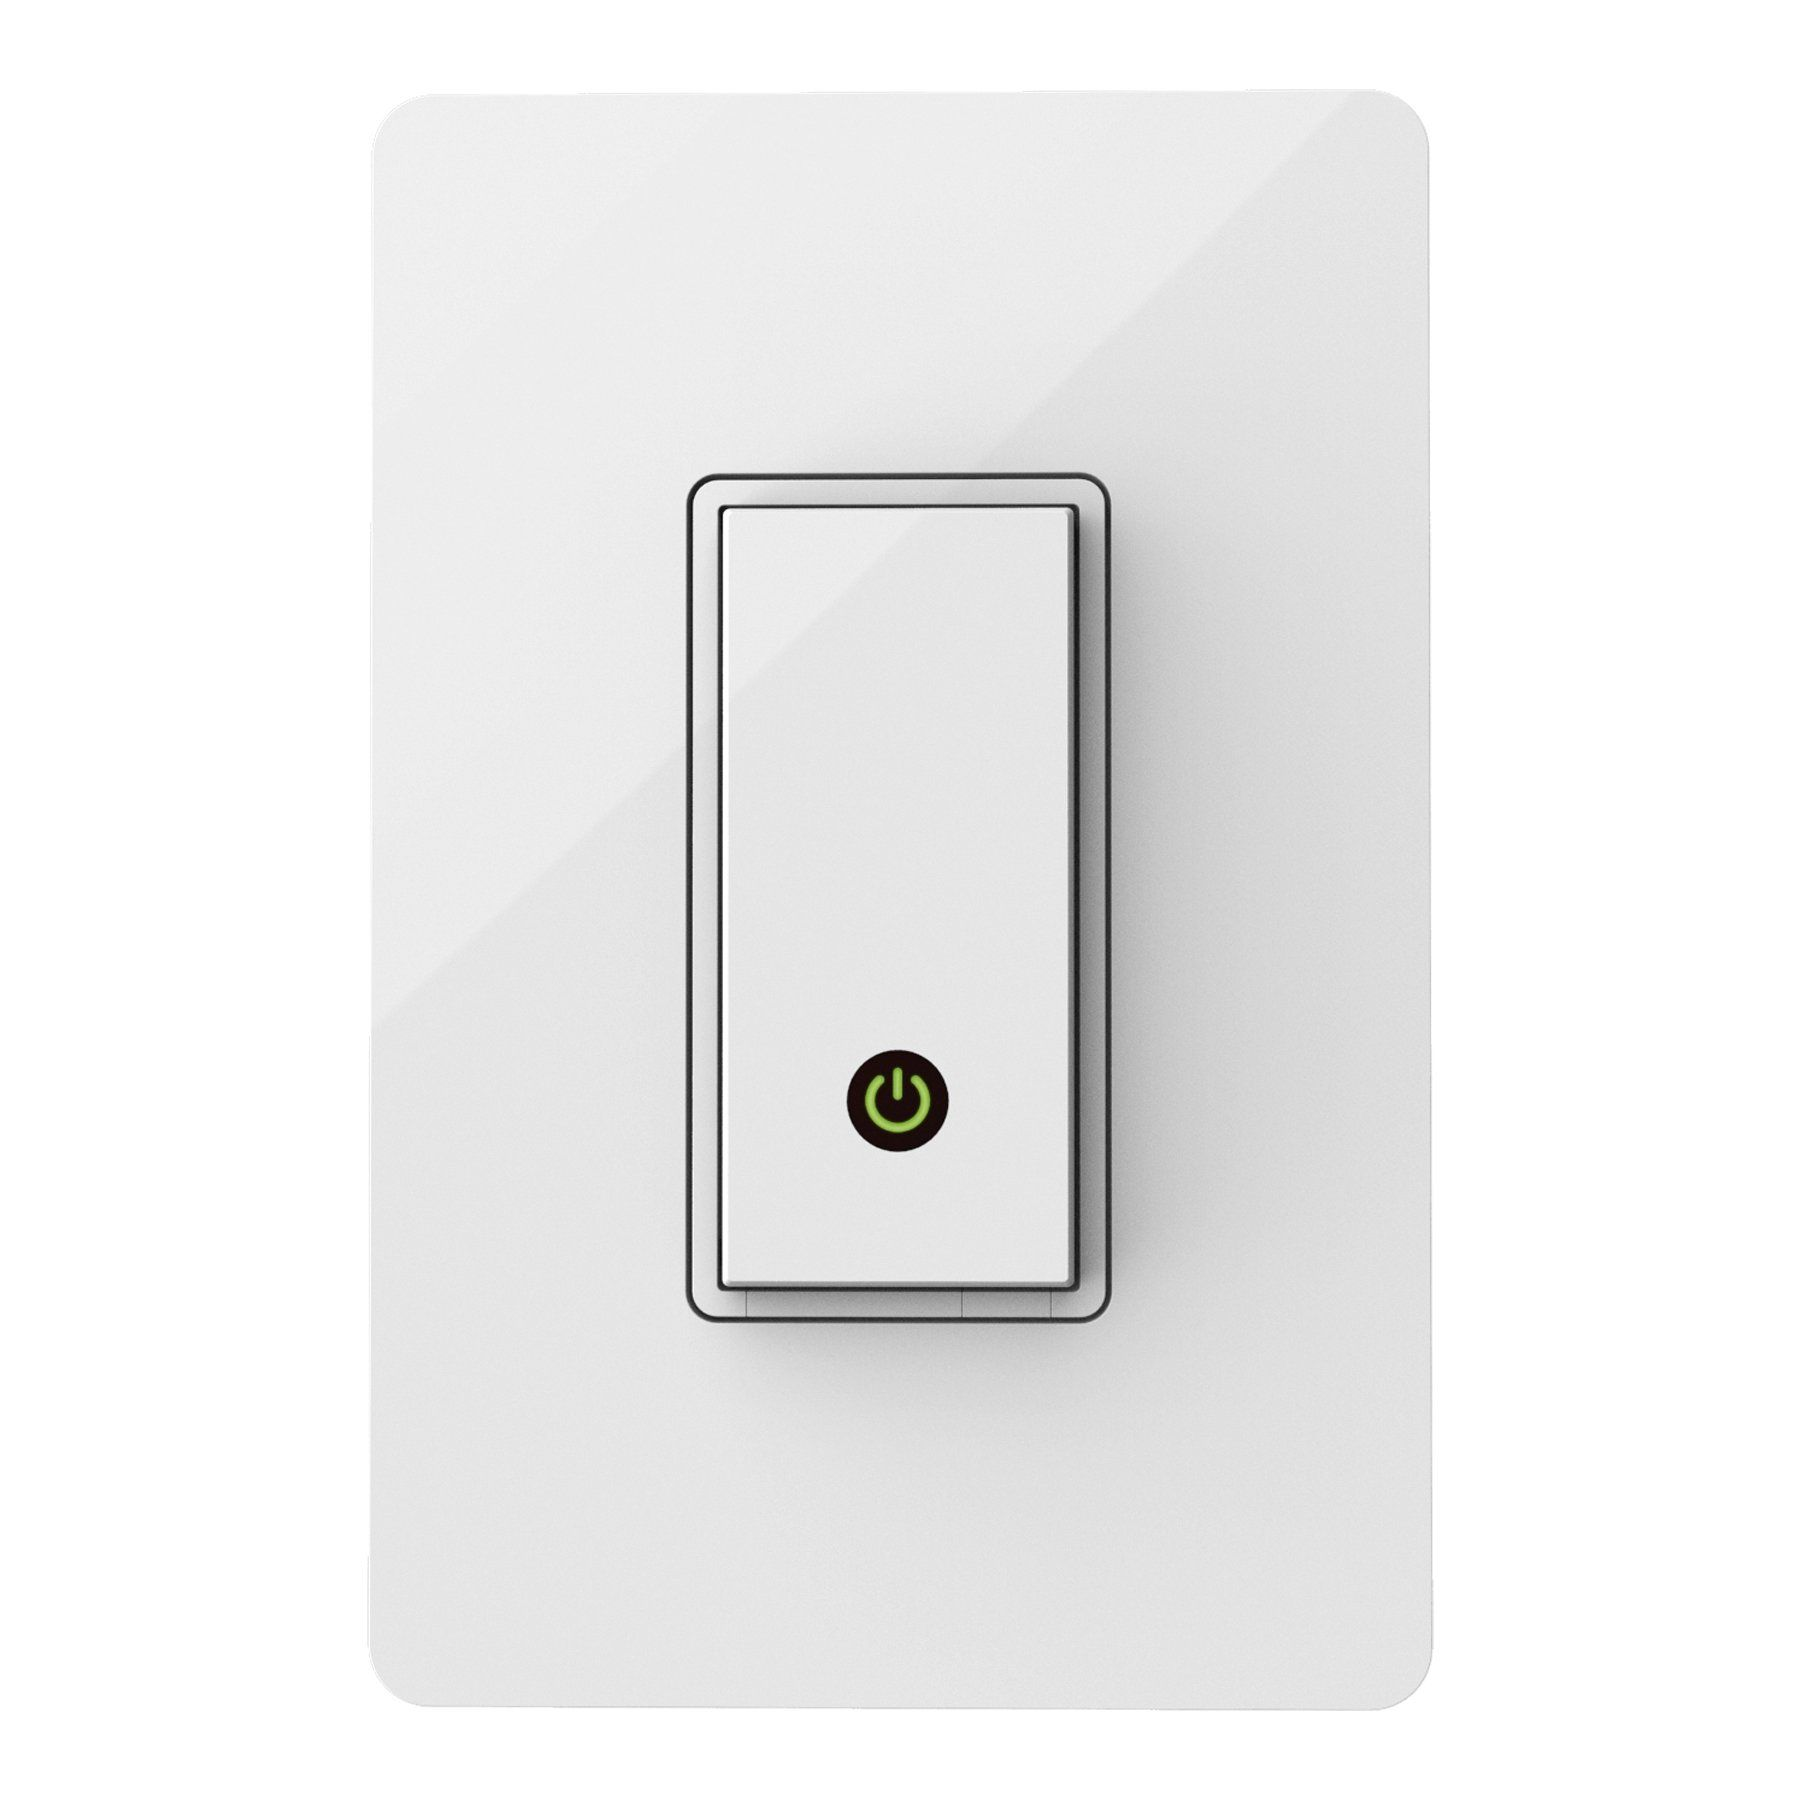 Belkin Wemo Light Switch Control Your Lights From Anywhere With The Home Automation App For Smartphones And Tablets Light Switch Wireless Lights Belkin Wemo